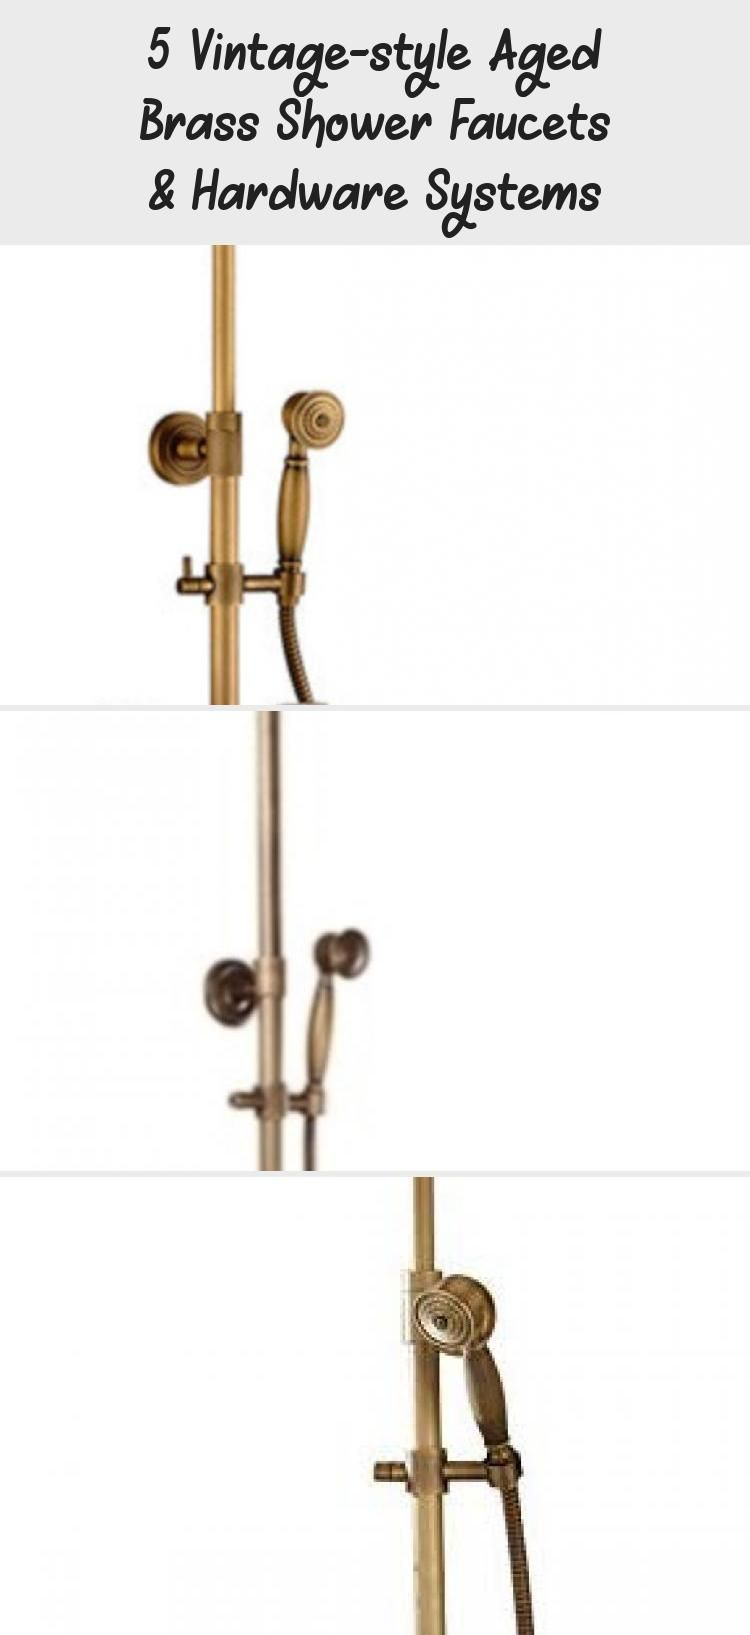 Photo of 5 Vintage-style Aged Brass Shower Faucets & Hardware Systems – Home Decor